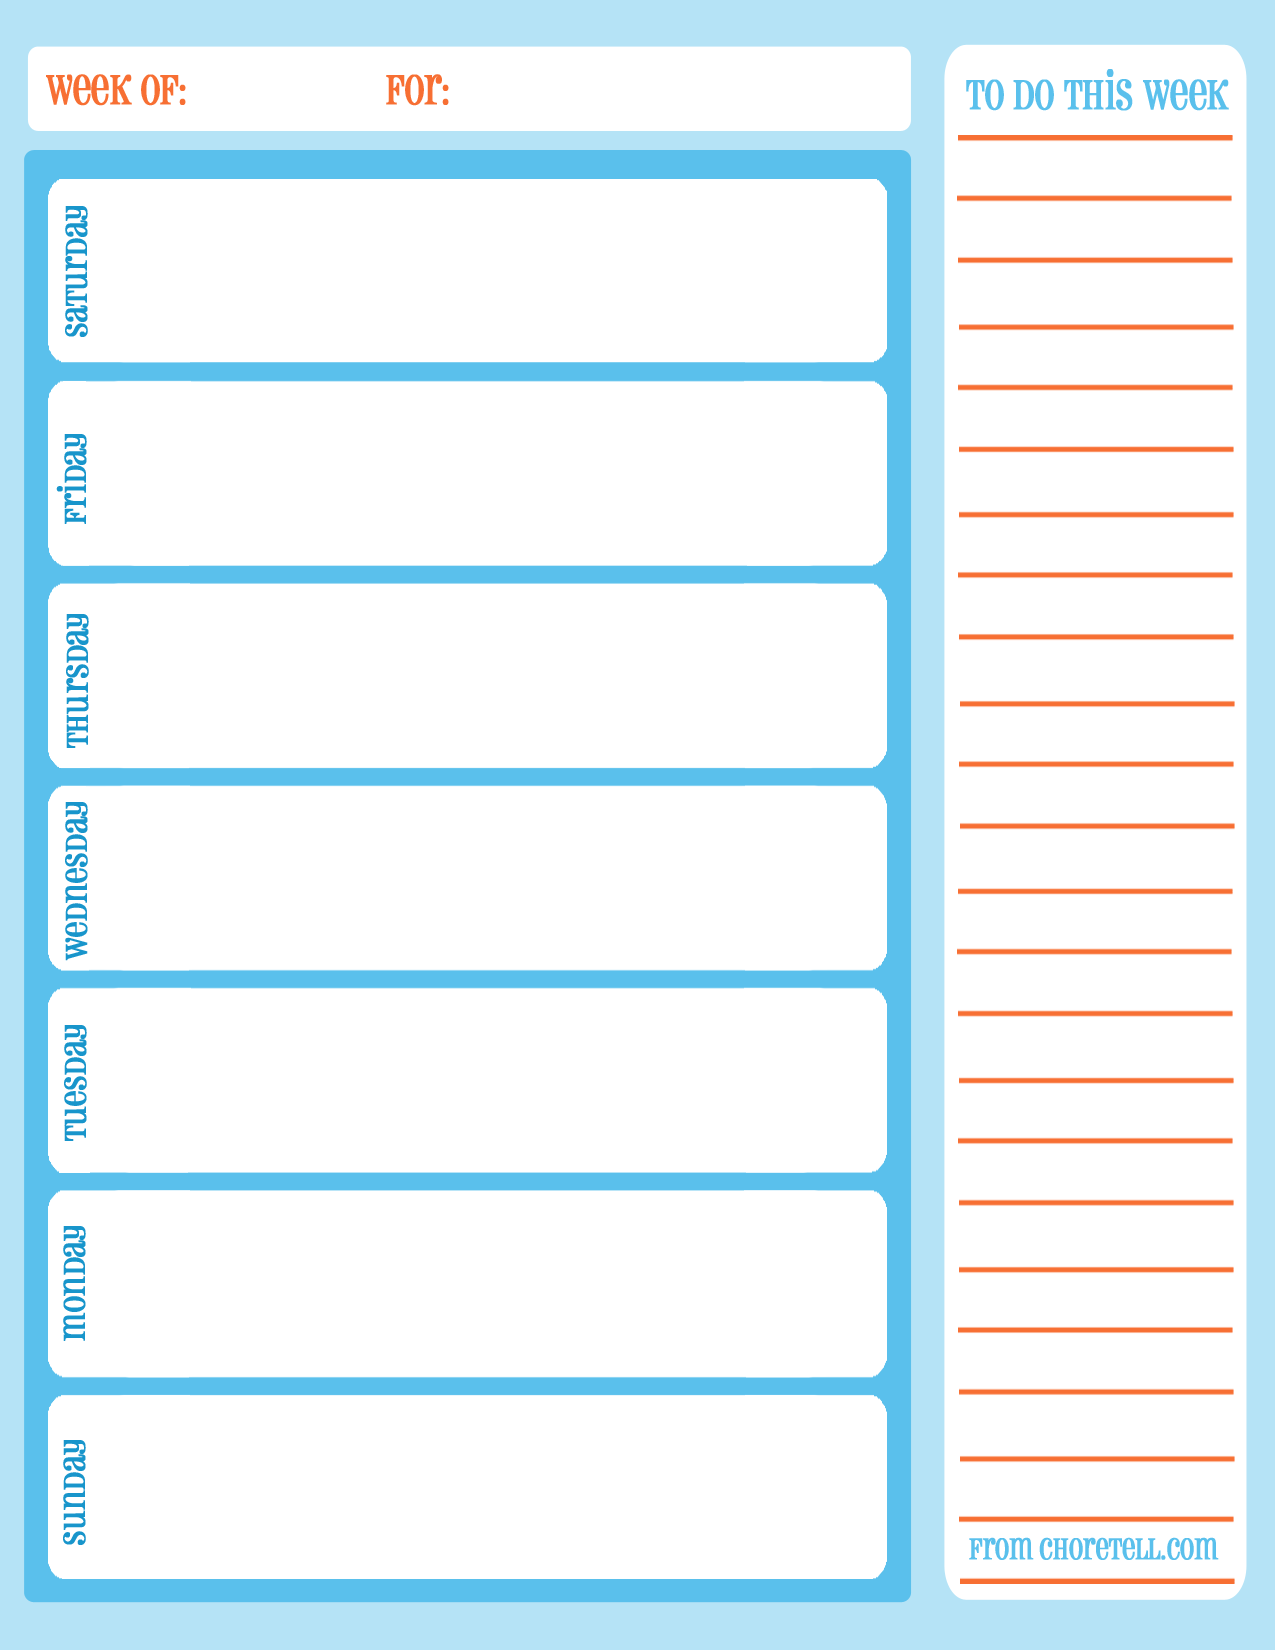 9 Images of Printable Weekly Calendar To Do